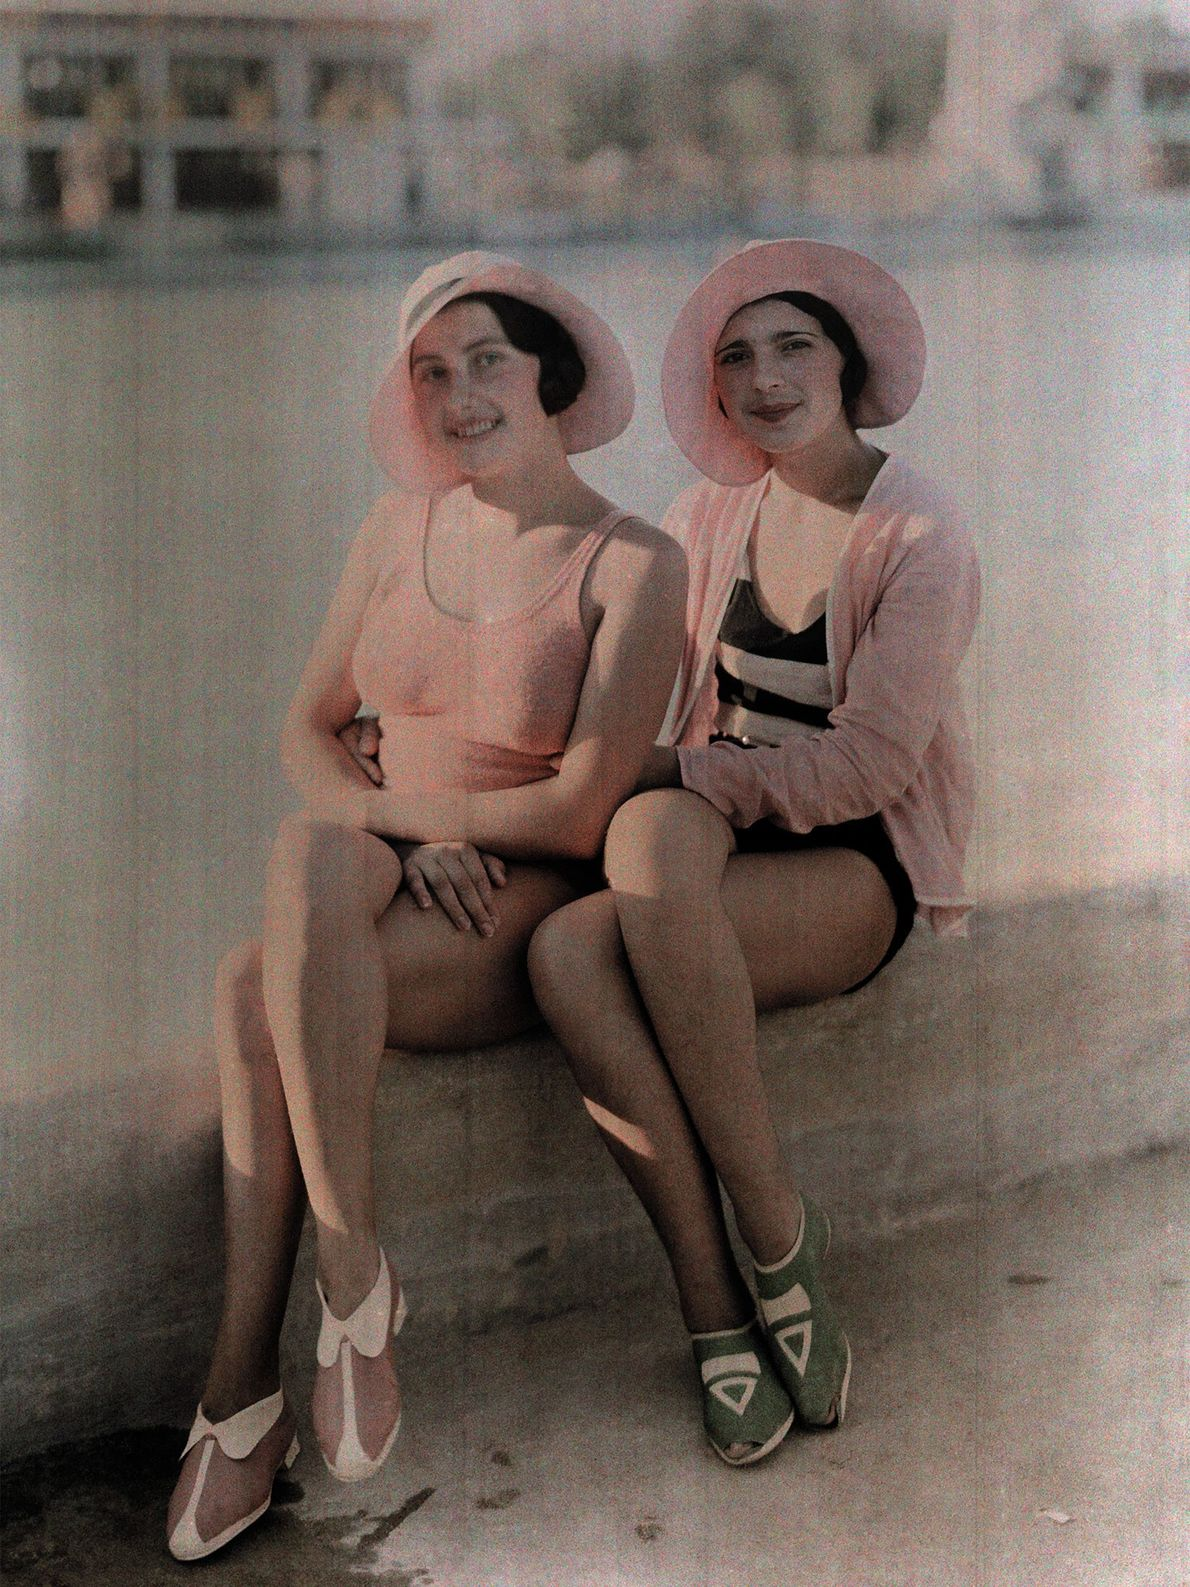 Girls in matching bathing suits and caps sit on a concrete ledge in Bucharest, Romania.